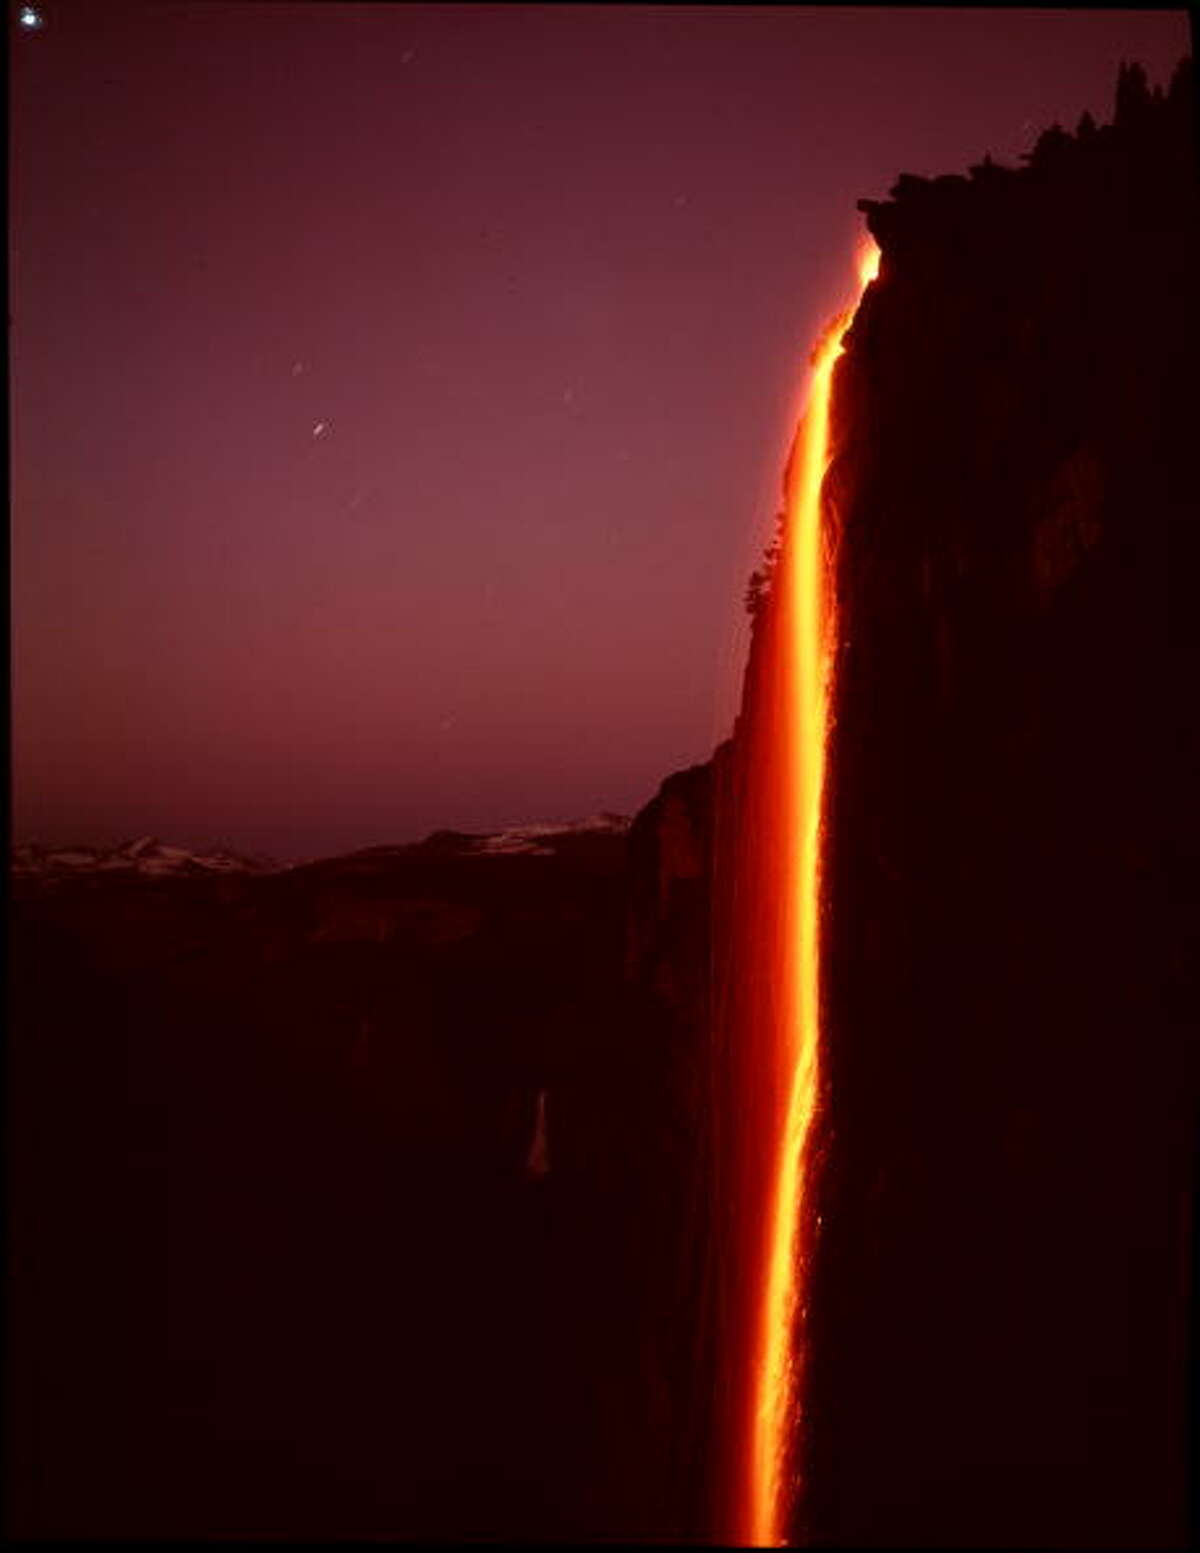 Firefall from Glacier Point at Yosemite National Park. (Photo by Ralph Crane/The LIFE Picture Collection/Getty Images)